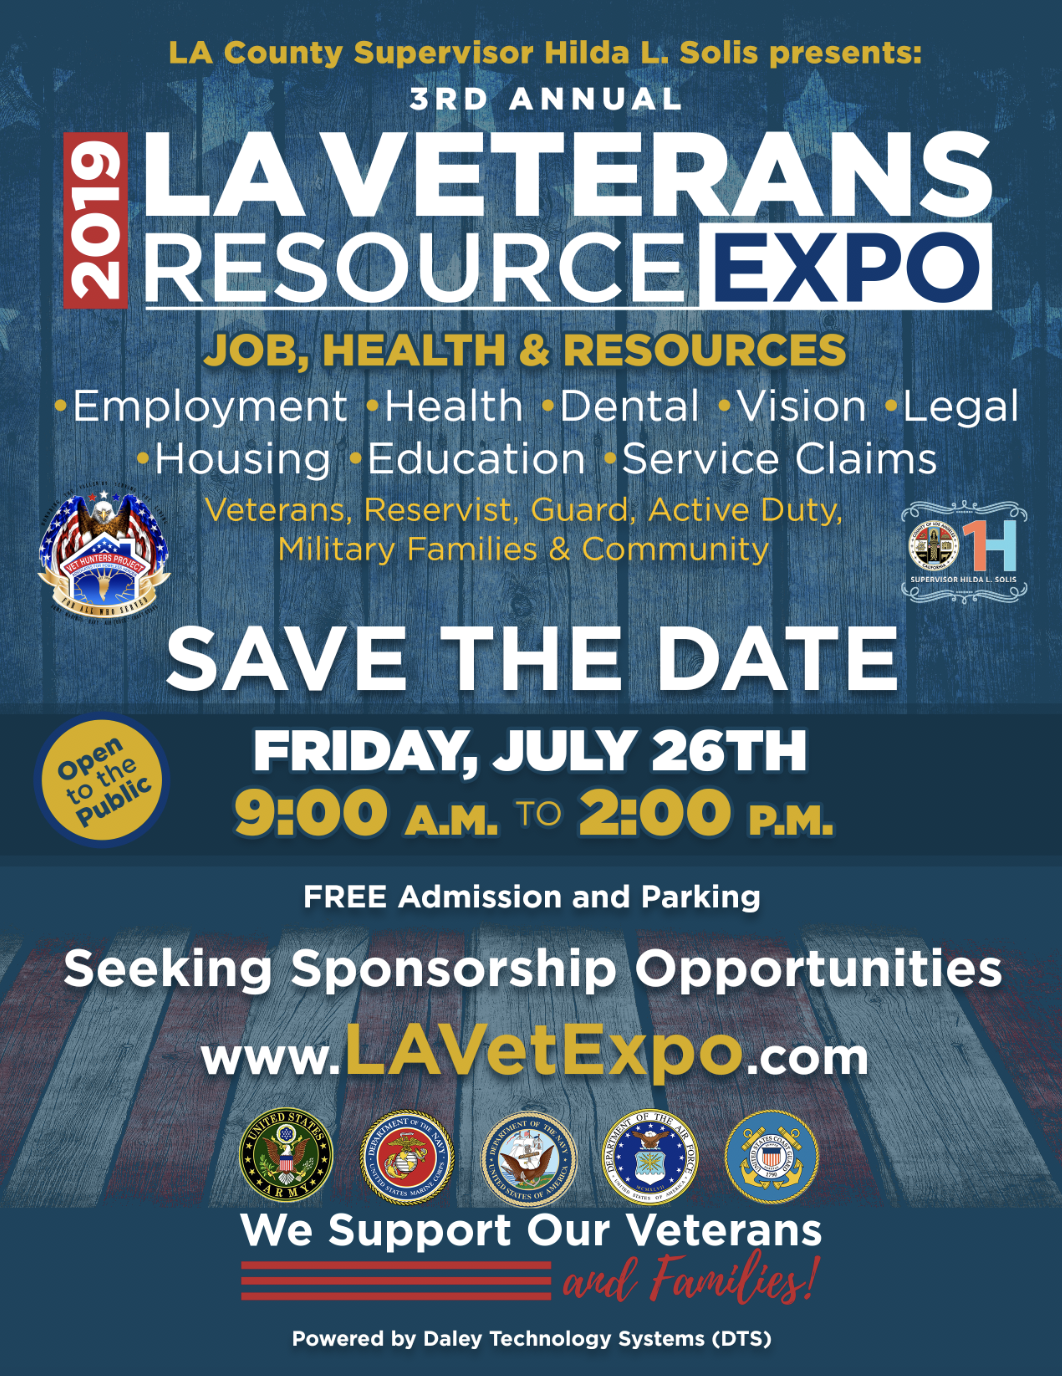 2019 LA veterans resource expo save the date